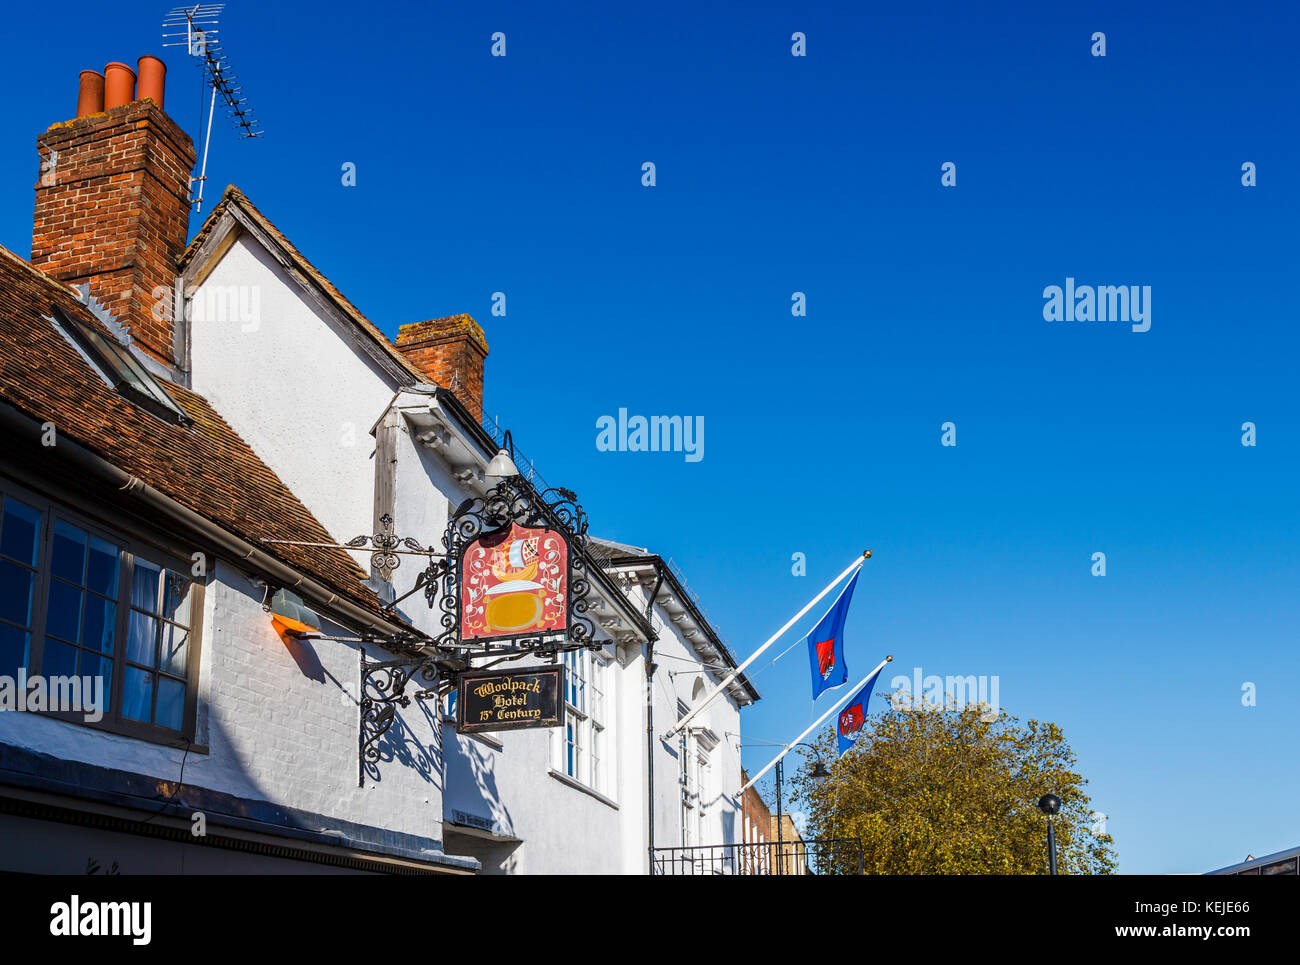 Sign at the historic 15th century Woolpack Hotel in High Street, Tenterden, Kent, southeast England, UK on a sunny - Stock Image